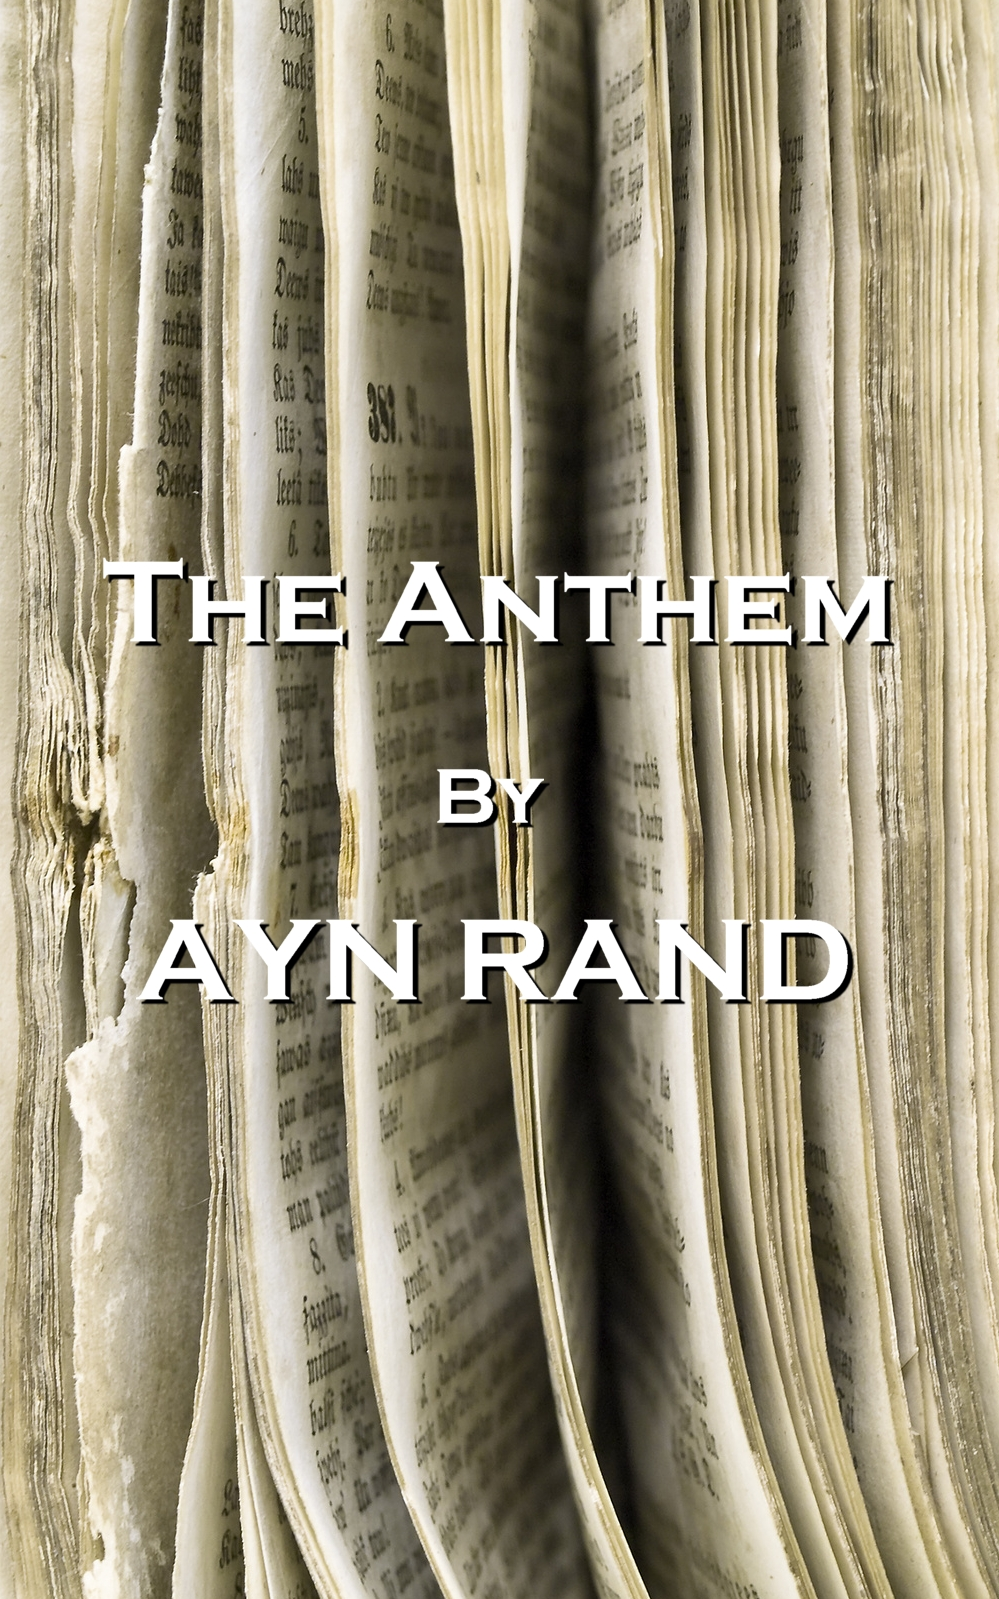 Ayn Rand - The Anthem, By Ayn Rand